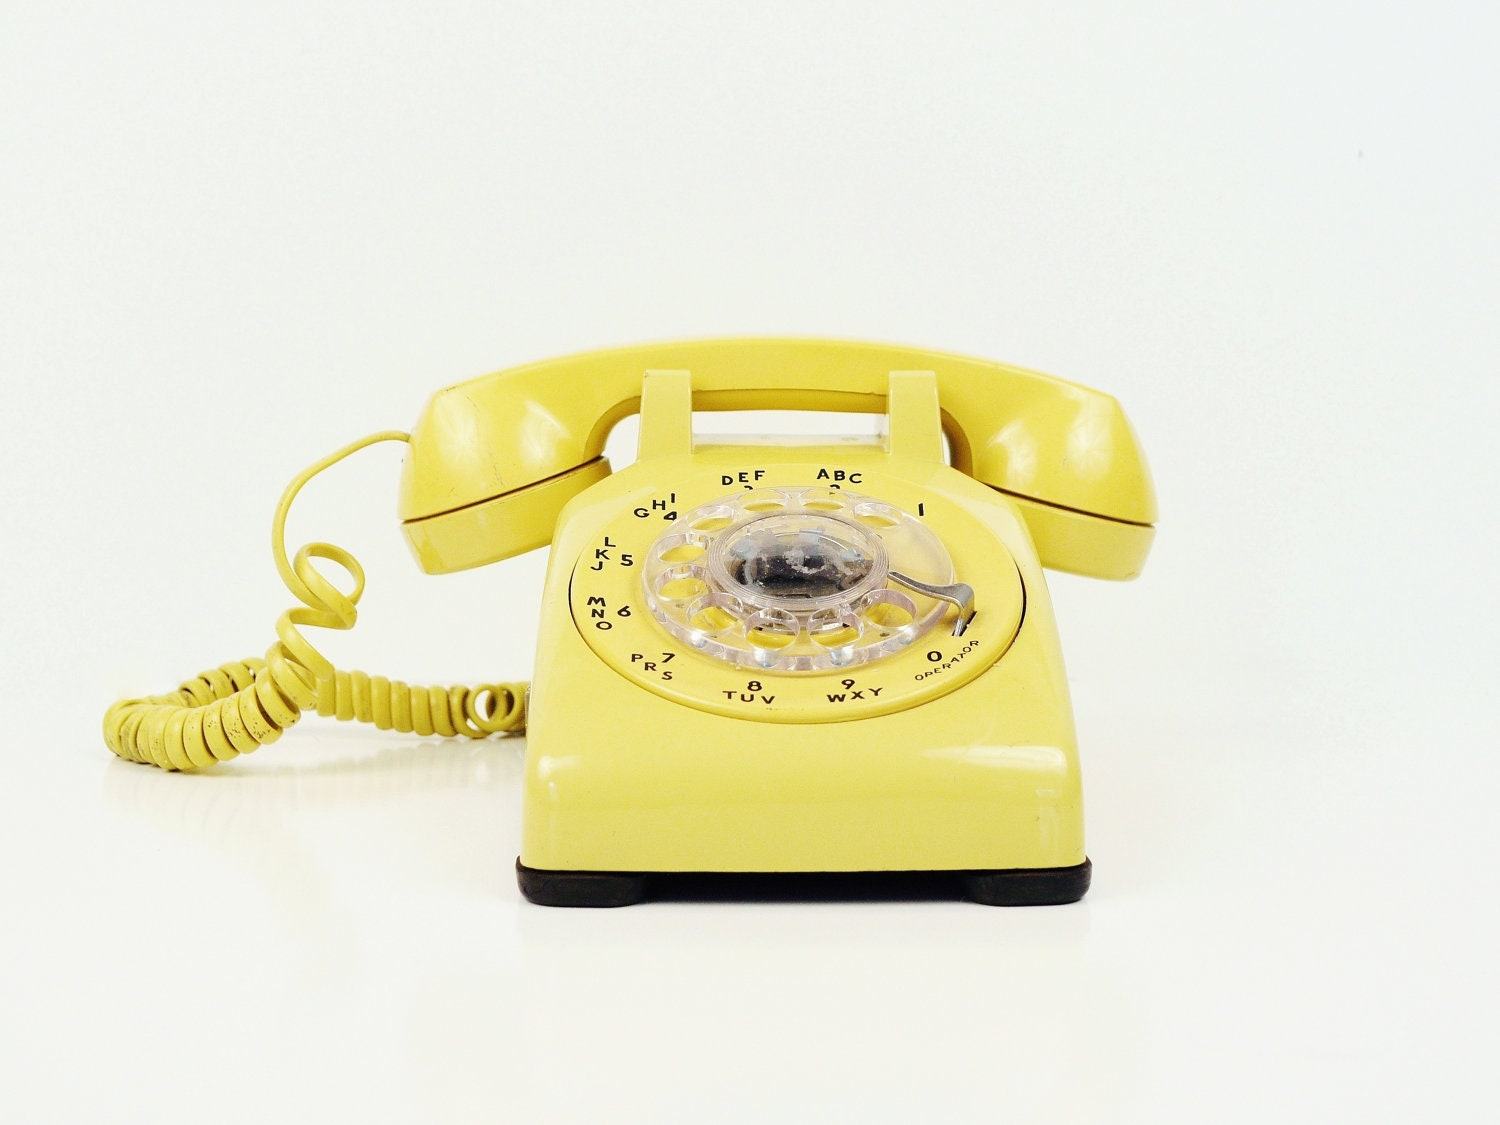 Canary Yellow Rotary Telephone -  Bell Systems Phone - thewhitepepper